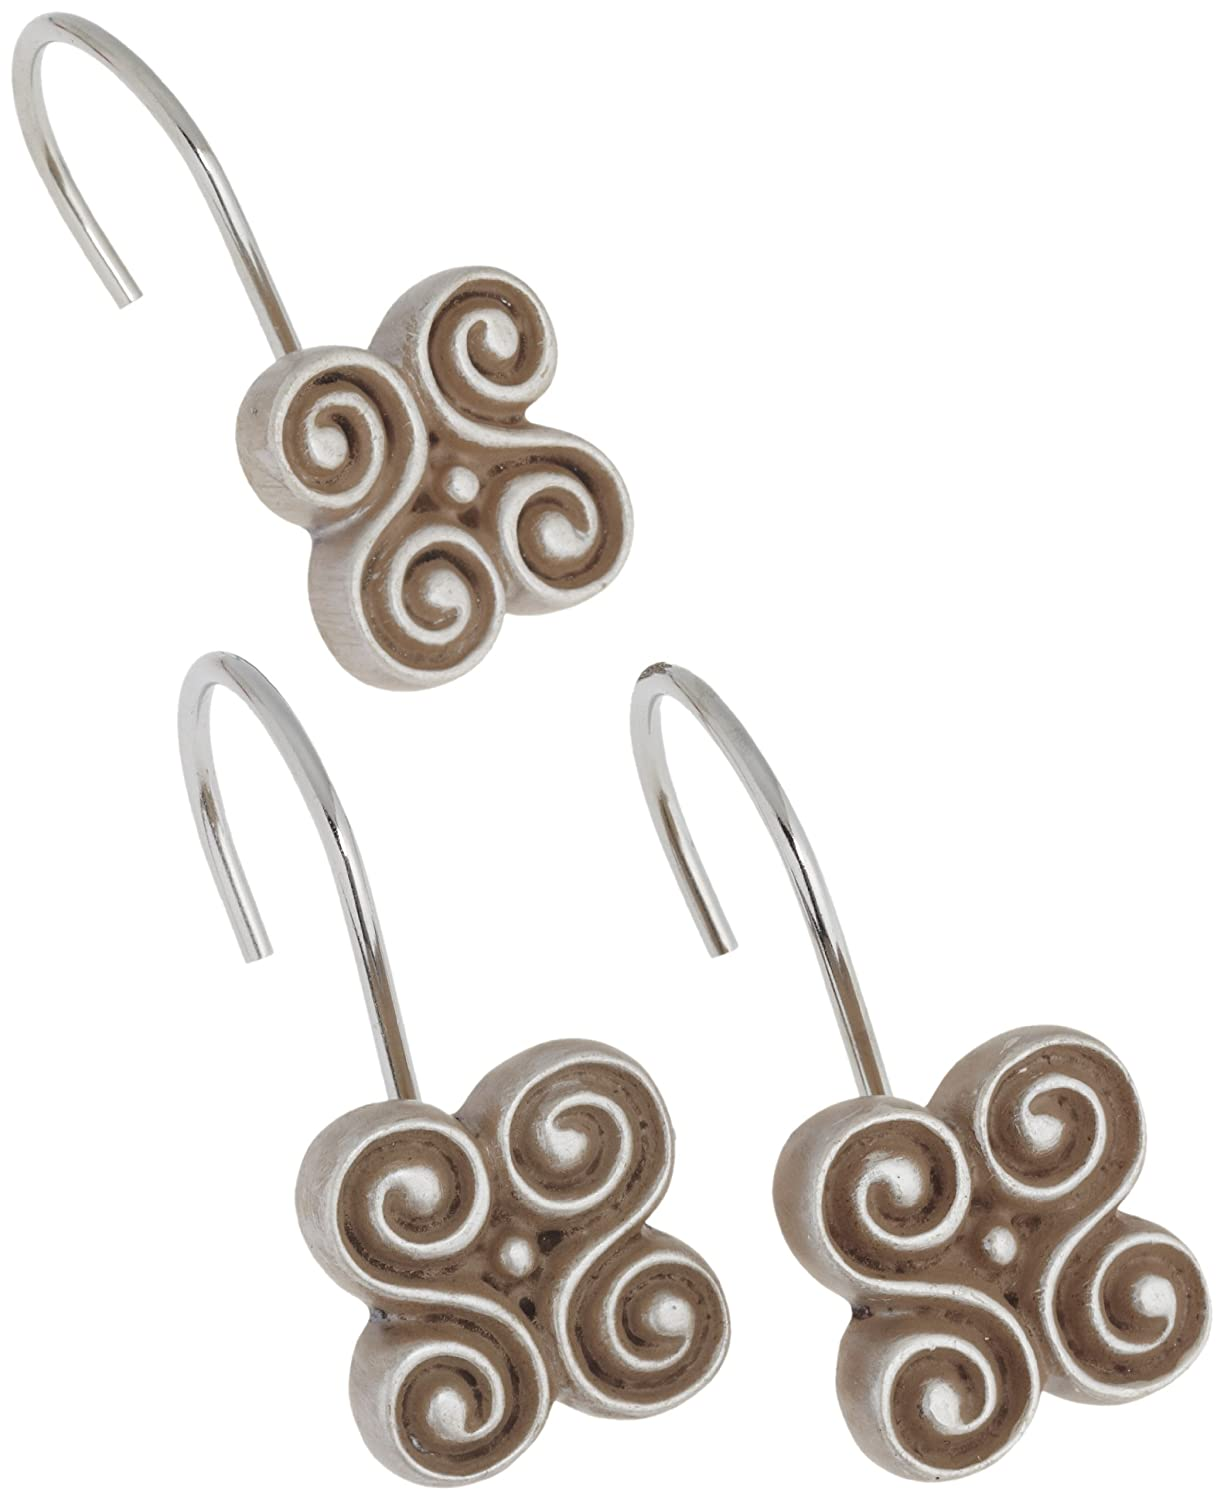 Oil Rubbed Bronze PHP-PM//67 Carnation Home Fashions Piermont Ceramic Resin Shower Curtain Hook